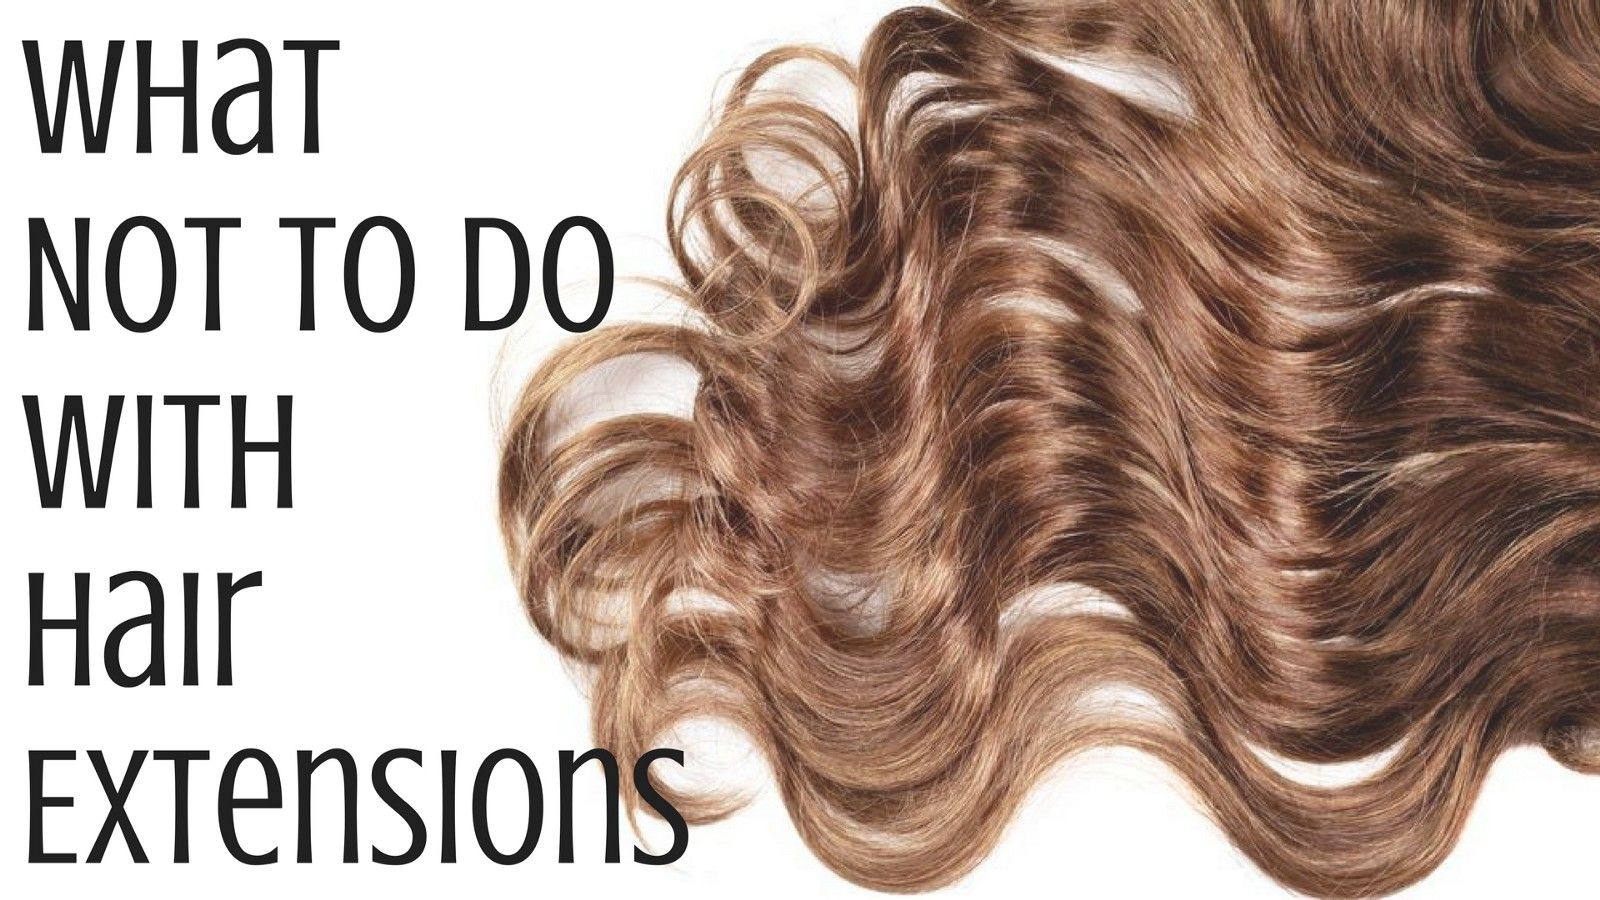 What Not To Do With Hair Extensions Hair Extensions And Extensions